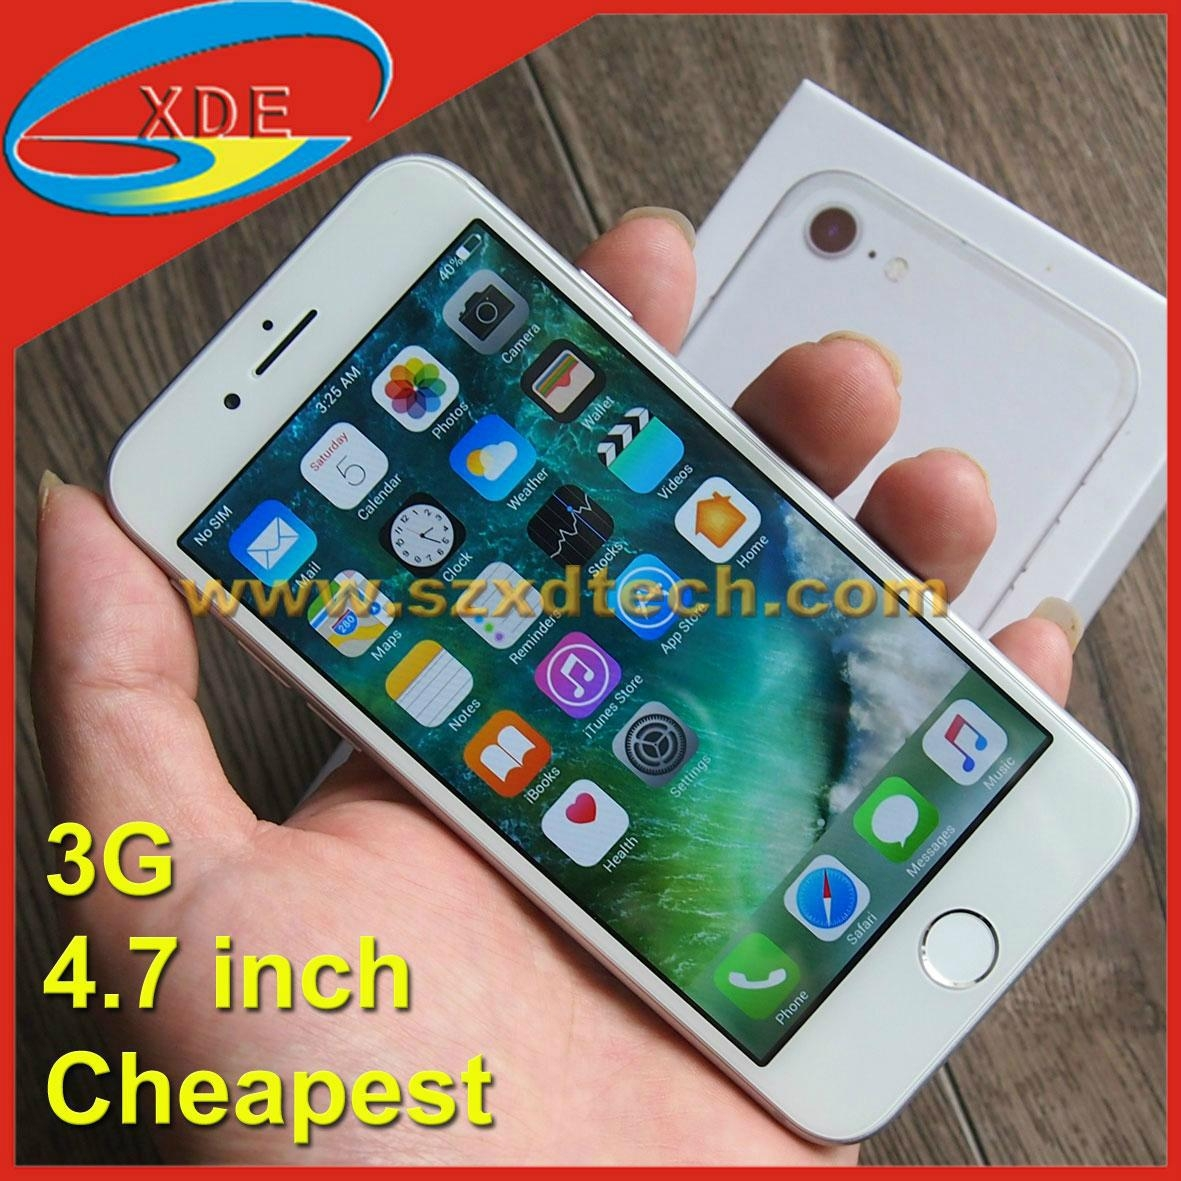 Cheapest iPhone 7 4.7 inch iPhone 7 with Wifi 3G